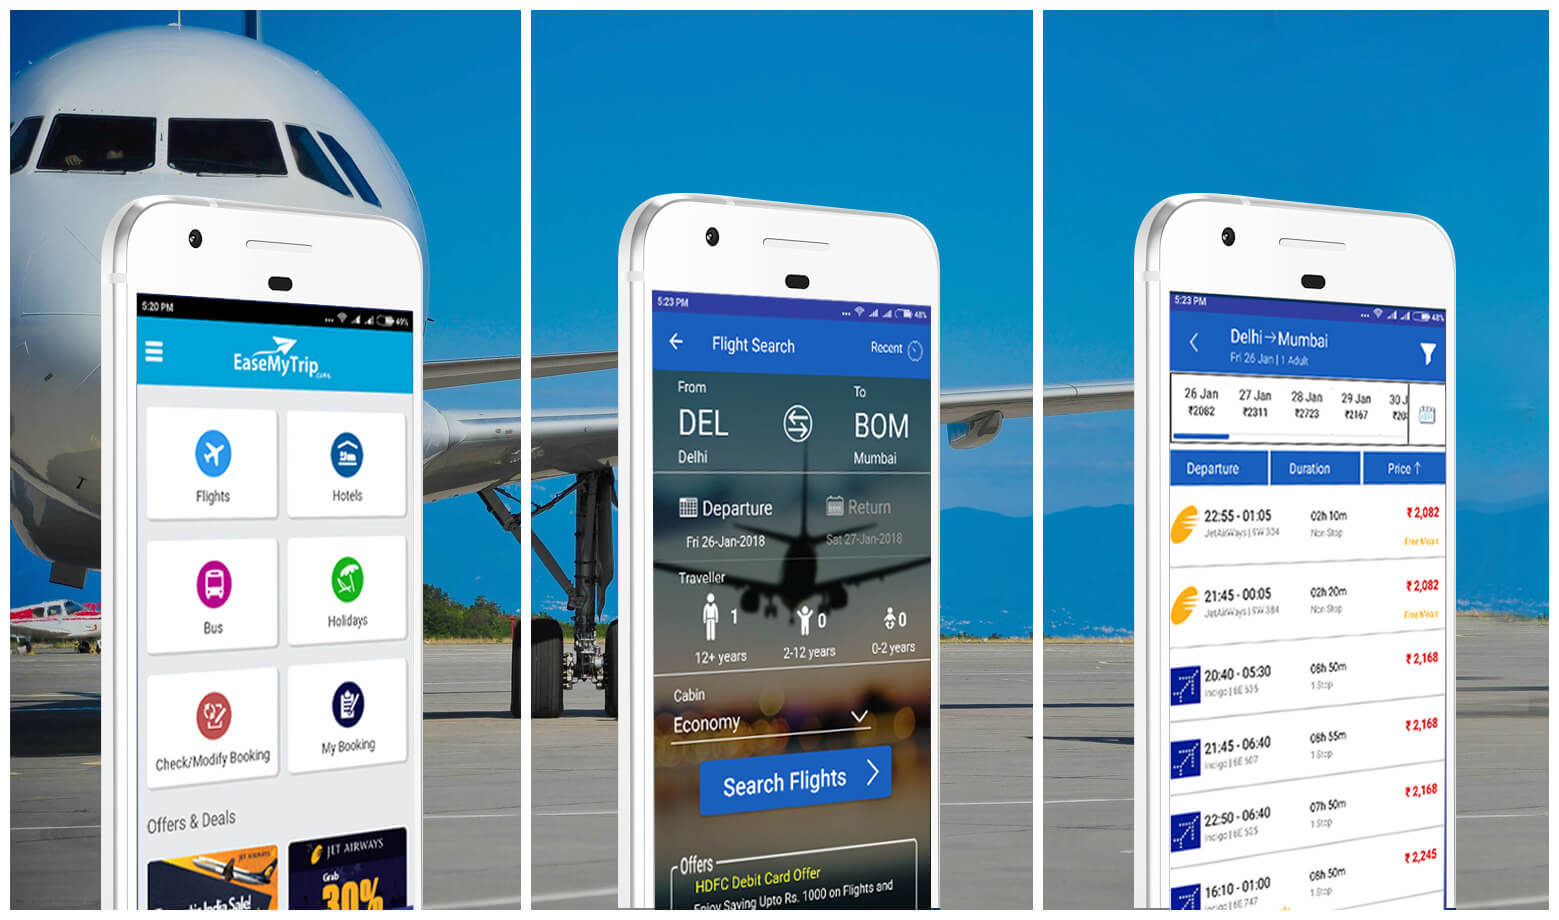 easemytrip-flight-ticket-booking-app-android